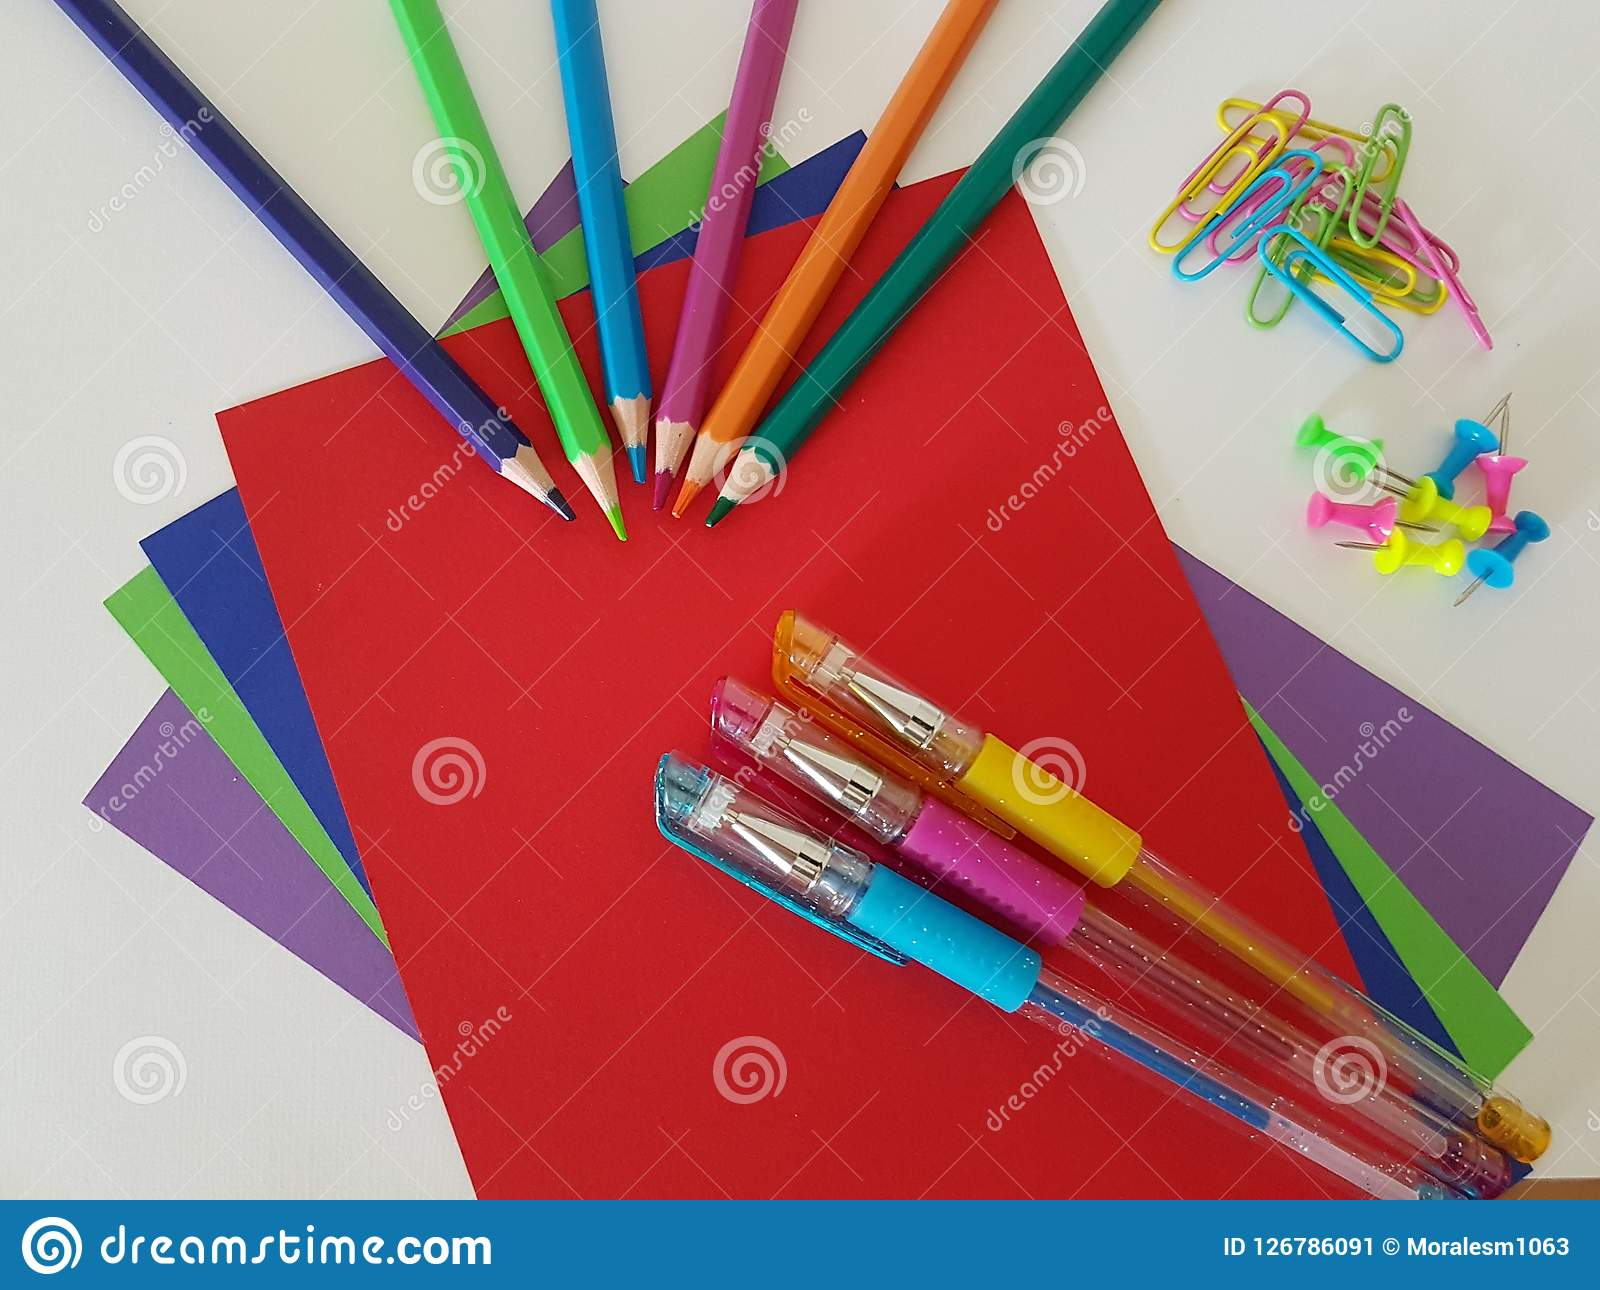 Arts And Crafts Supply School Supplies Stock Image Image Of